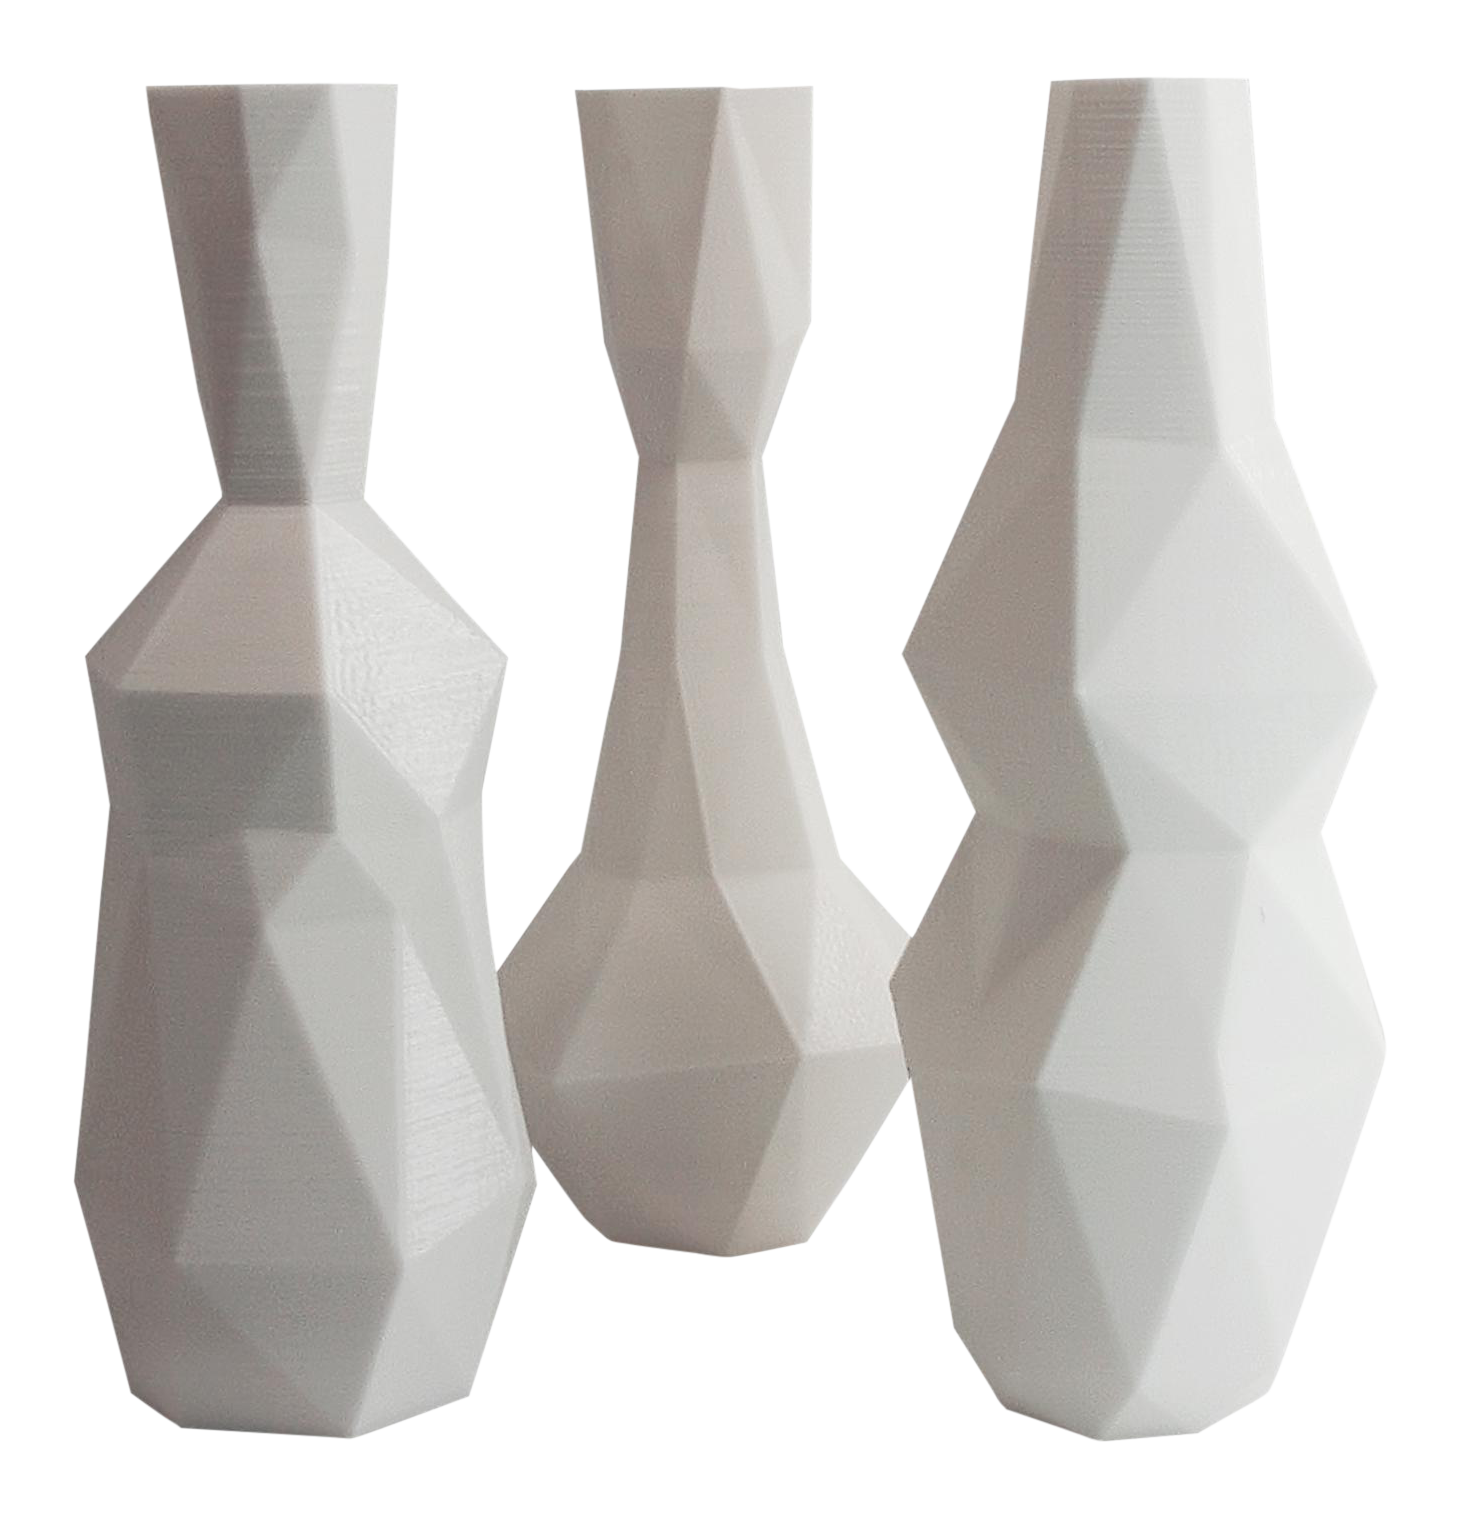 Cubism drawing vase. White d printed cubist